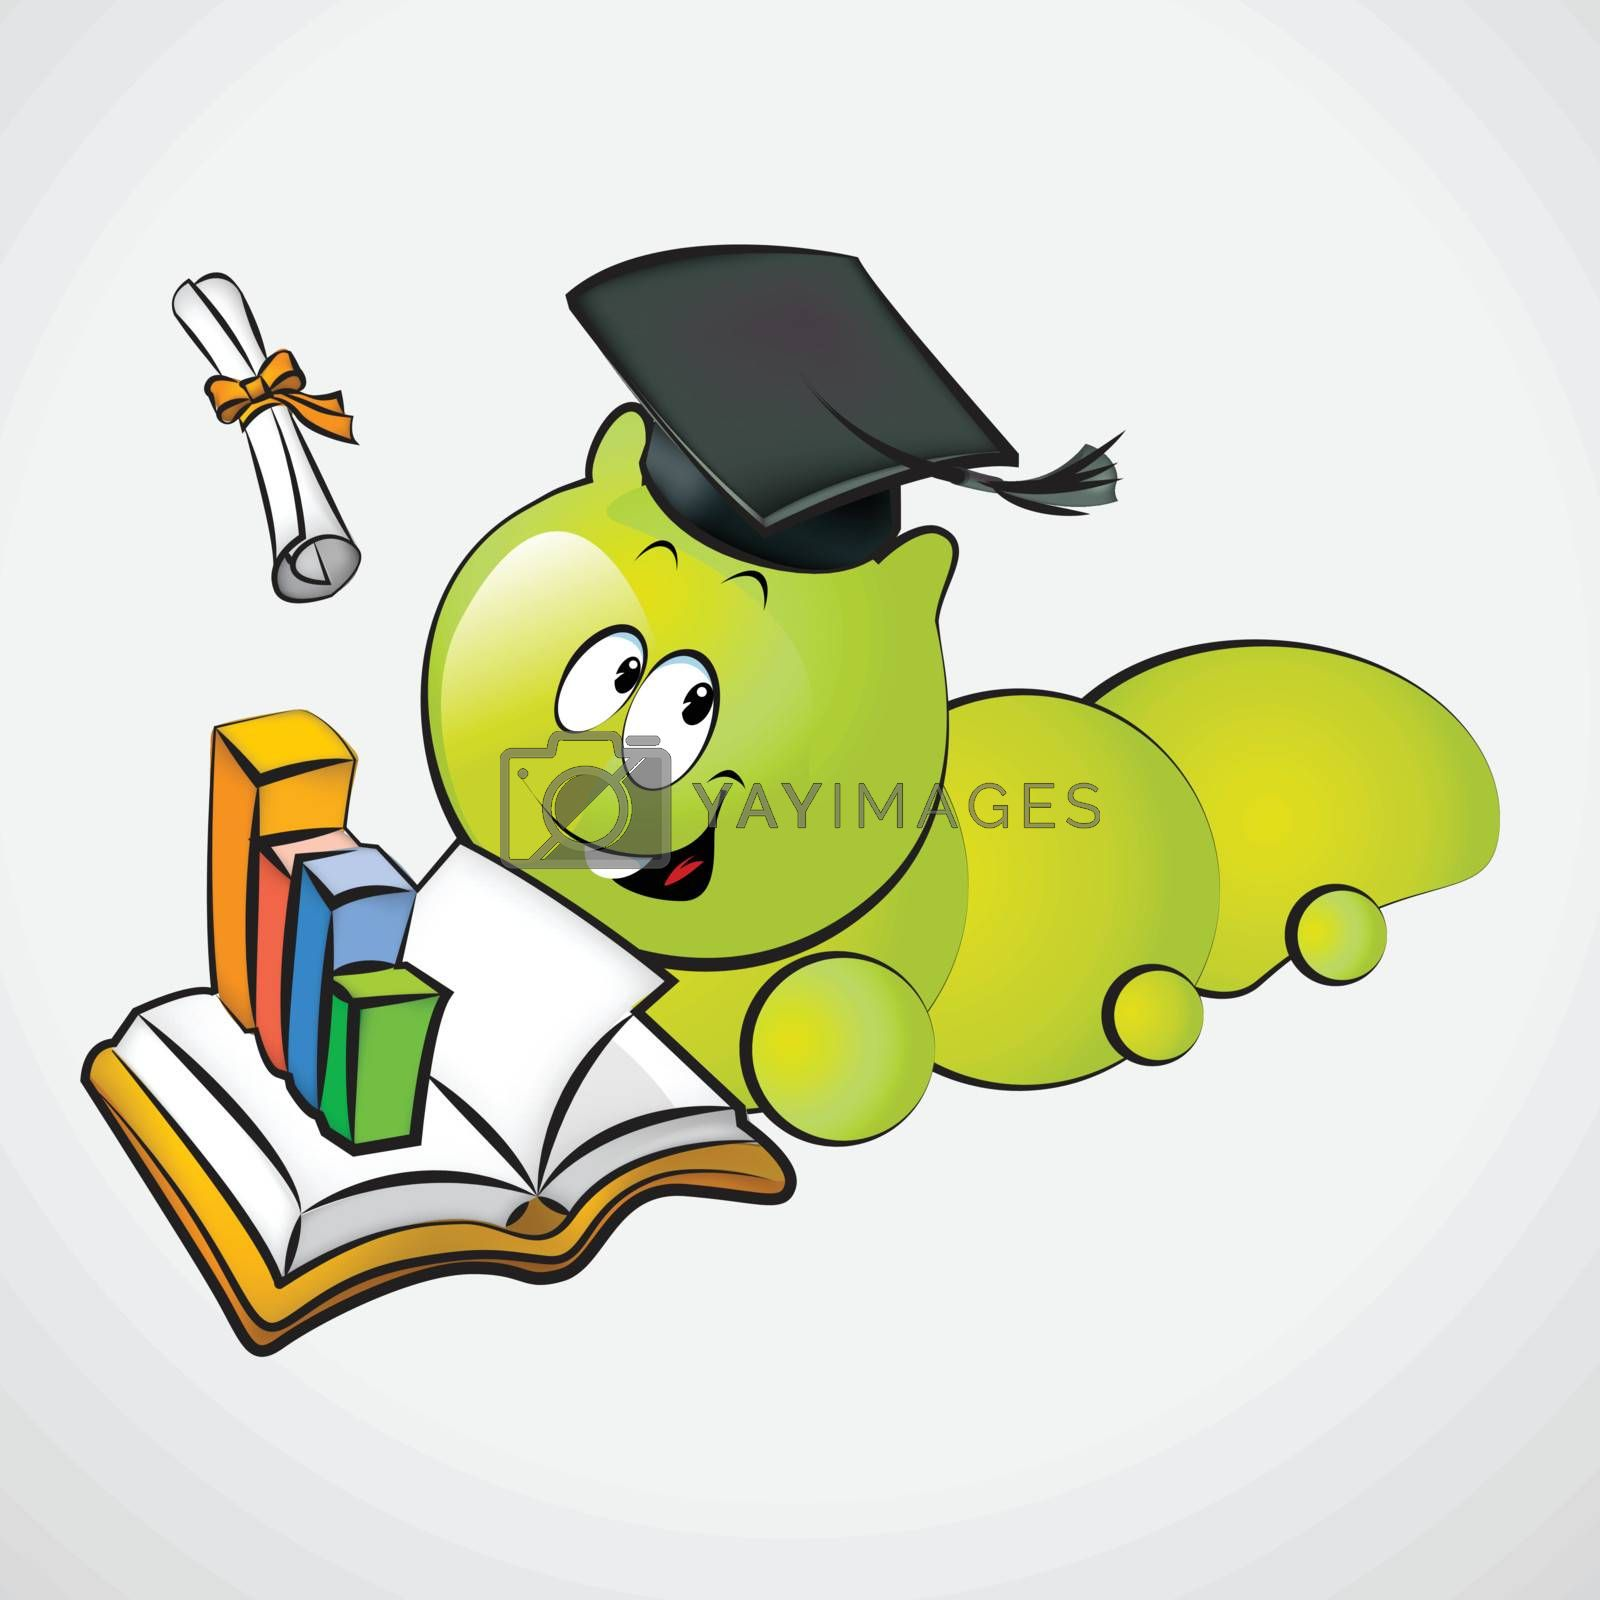 Bookworm with Graduation Cap and Holding a Diploma by nirots